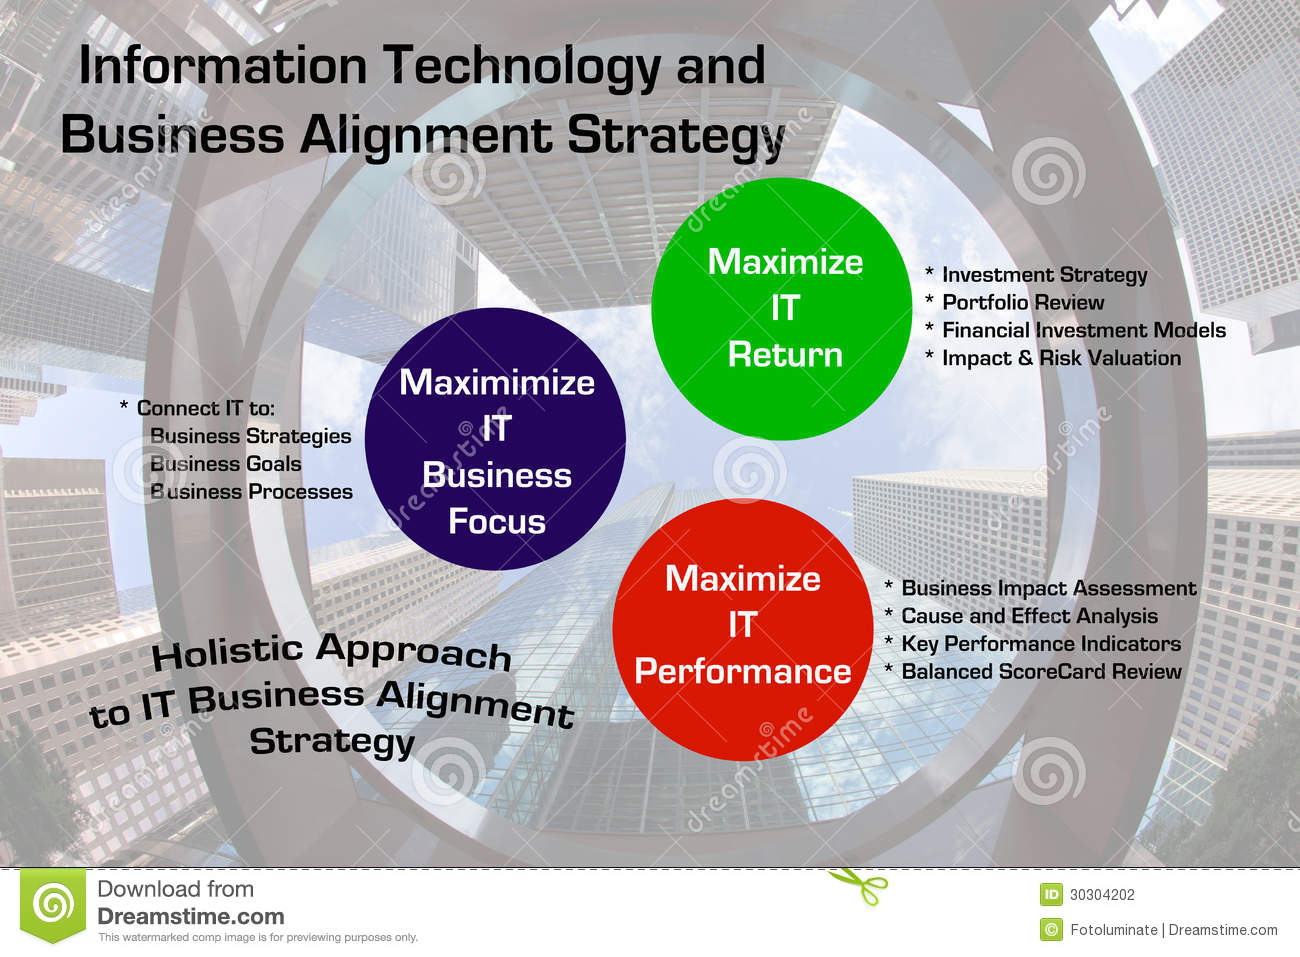 information technology in business management essay Information technology is that technology by which the 'nformation is processed, communicated, exhibited and retrieved in a fast, error-free and proper-way information technology is a technology in which both telecommunication computer technologies work together to provide formation.